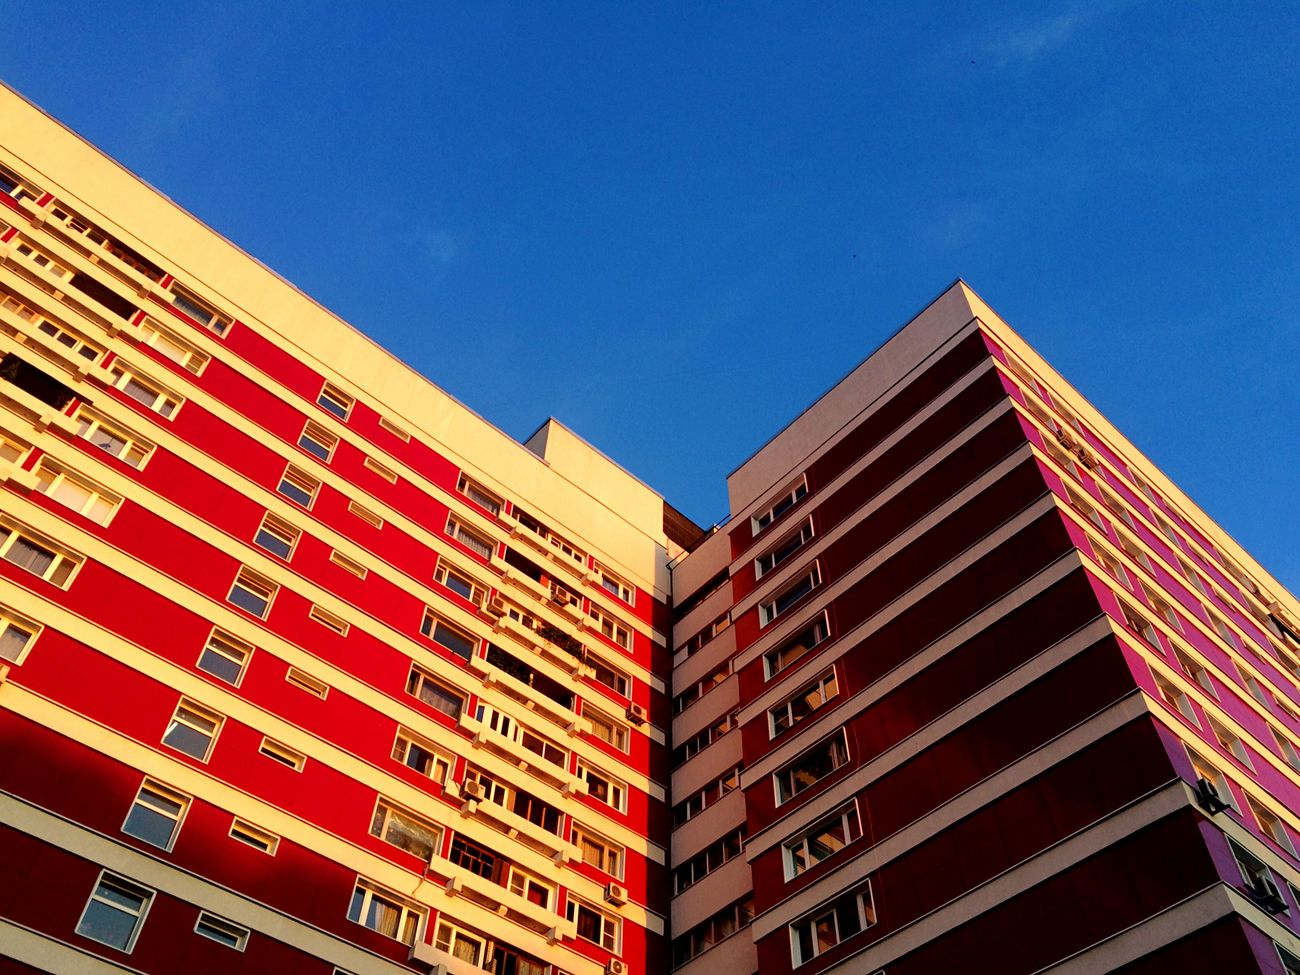 Architecture City MyHOUSE Home Sweet Home Bright Lights Red Geometry Contrast